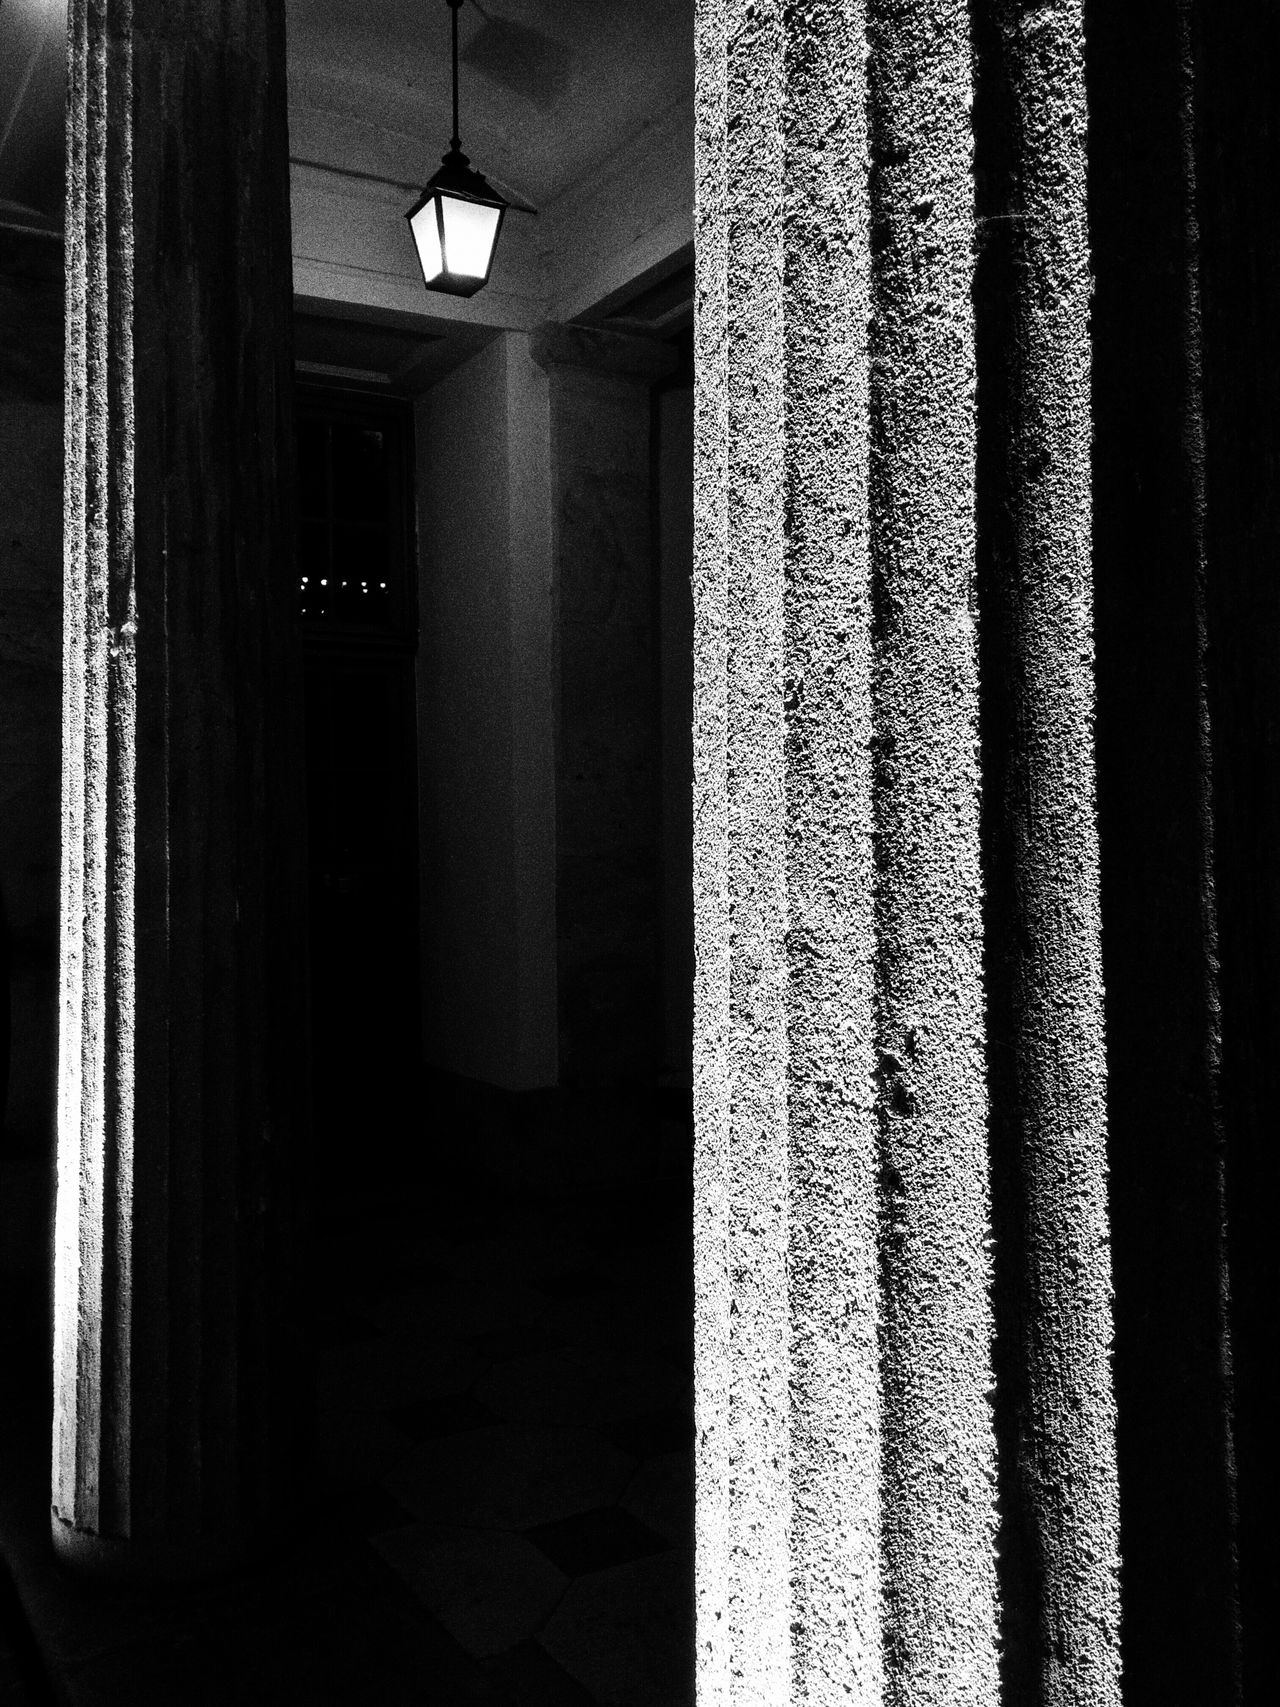 Pim Budapest Budapestagram Columns Shadows & Lights Blackandwhite Photography Bnw LGg3photography Mobilephotography